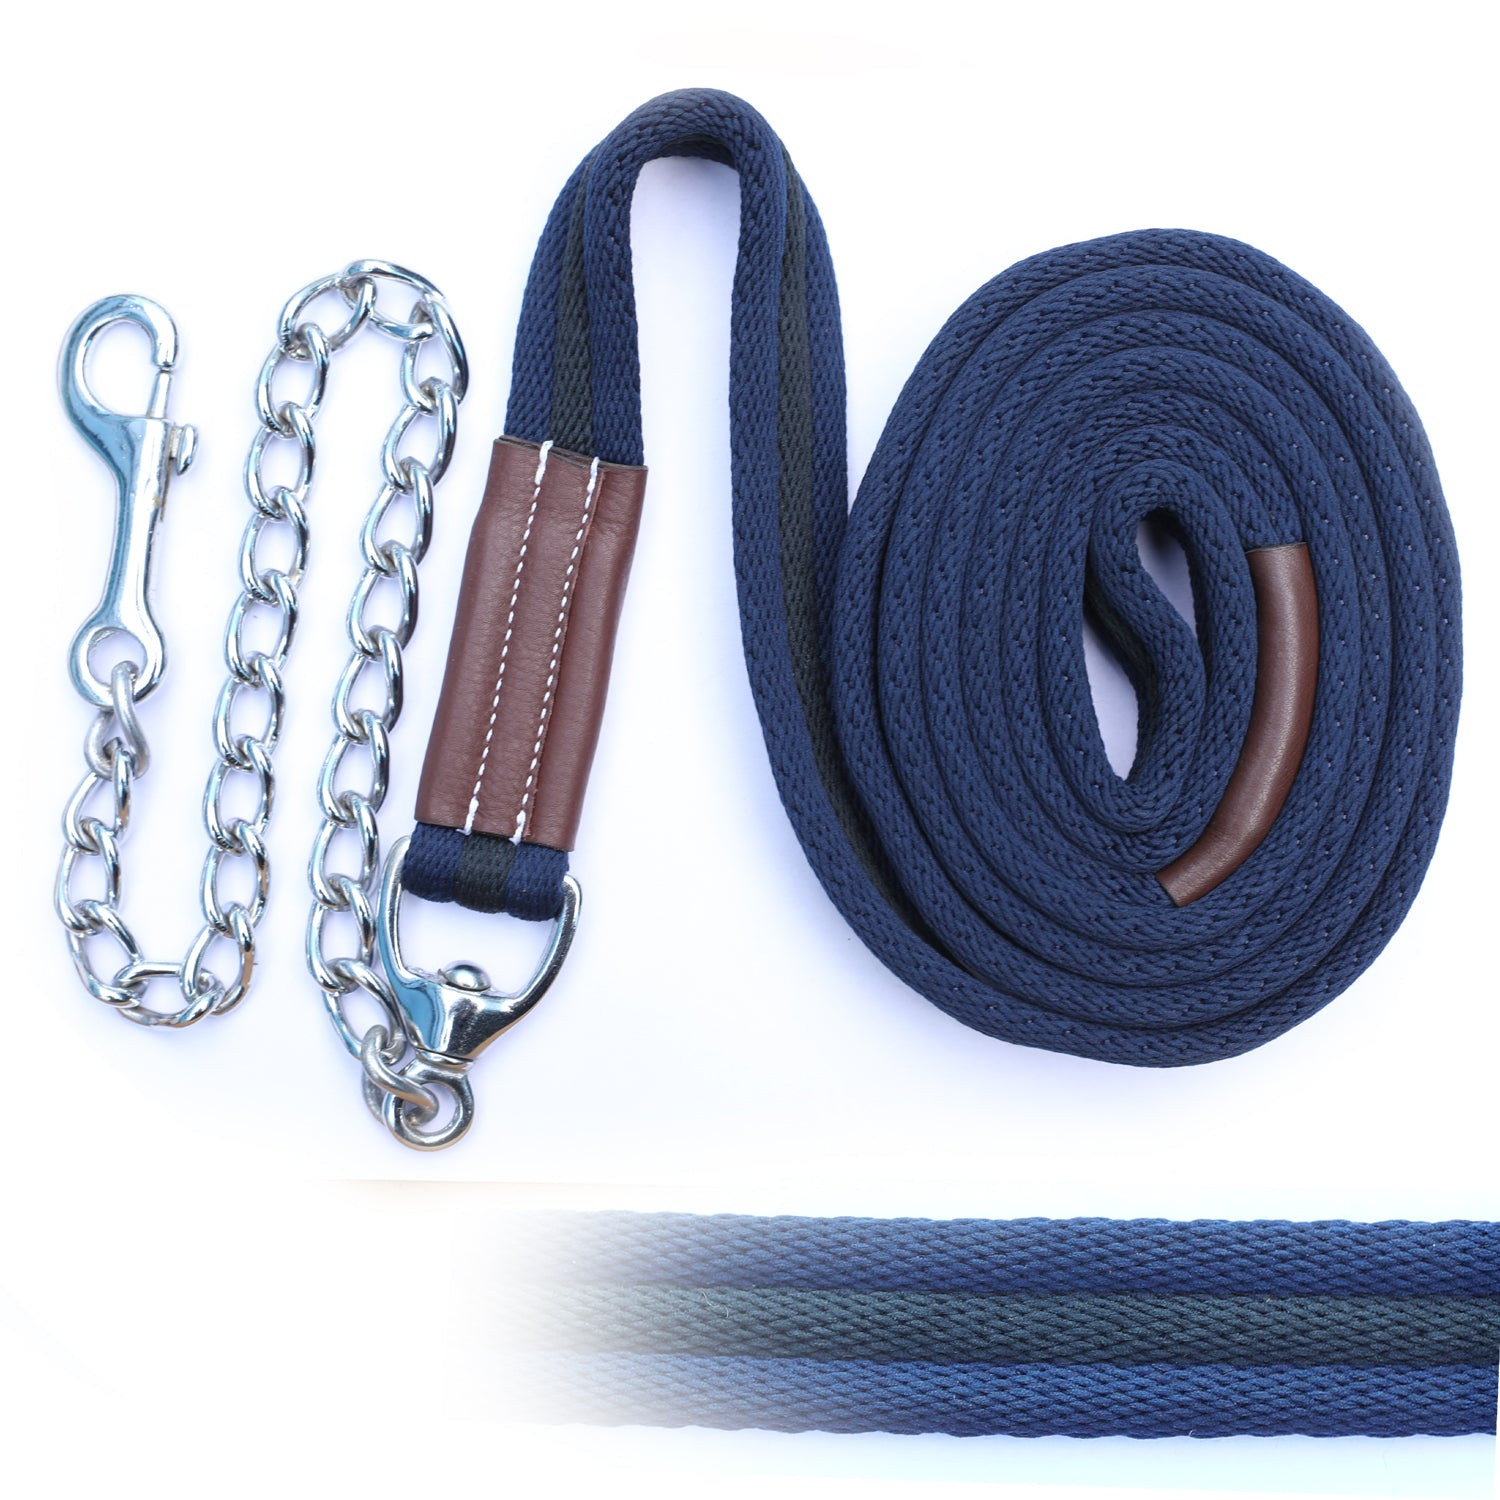 ExionPro Majestic Navy Blue Web Cushion Leads With Black Strip Along With Solid Brass Chain-Bridles & Reins